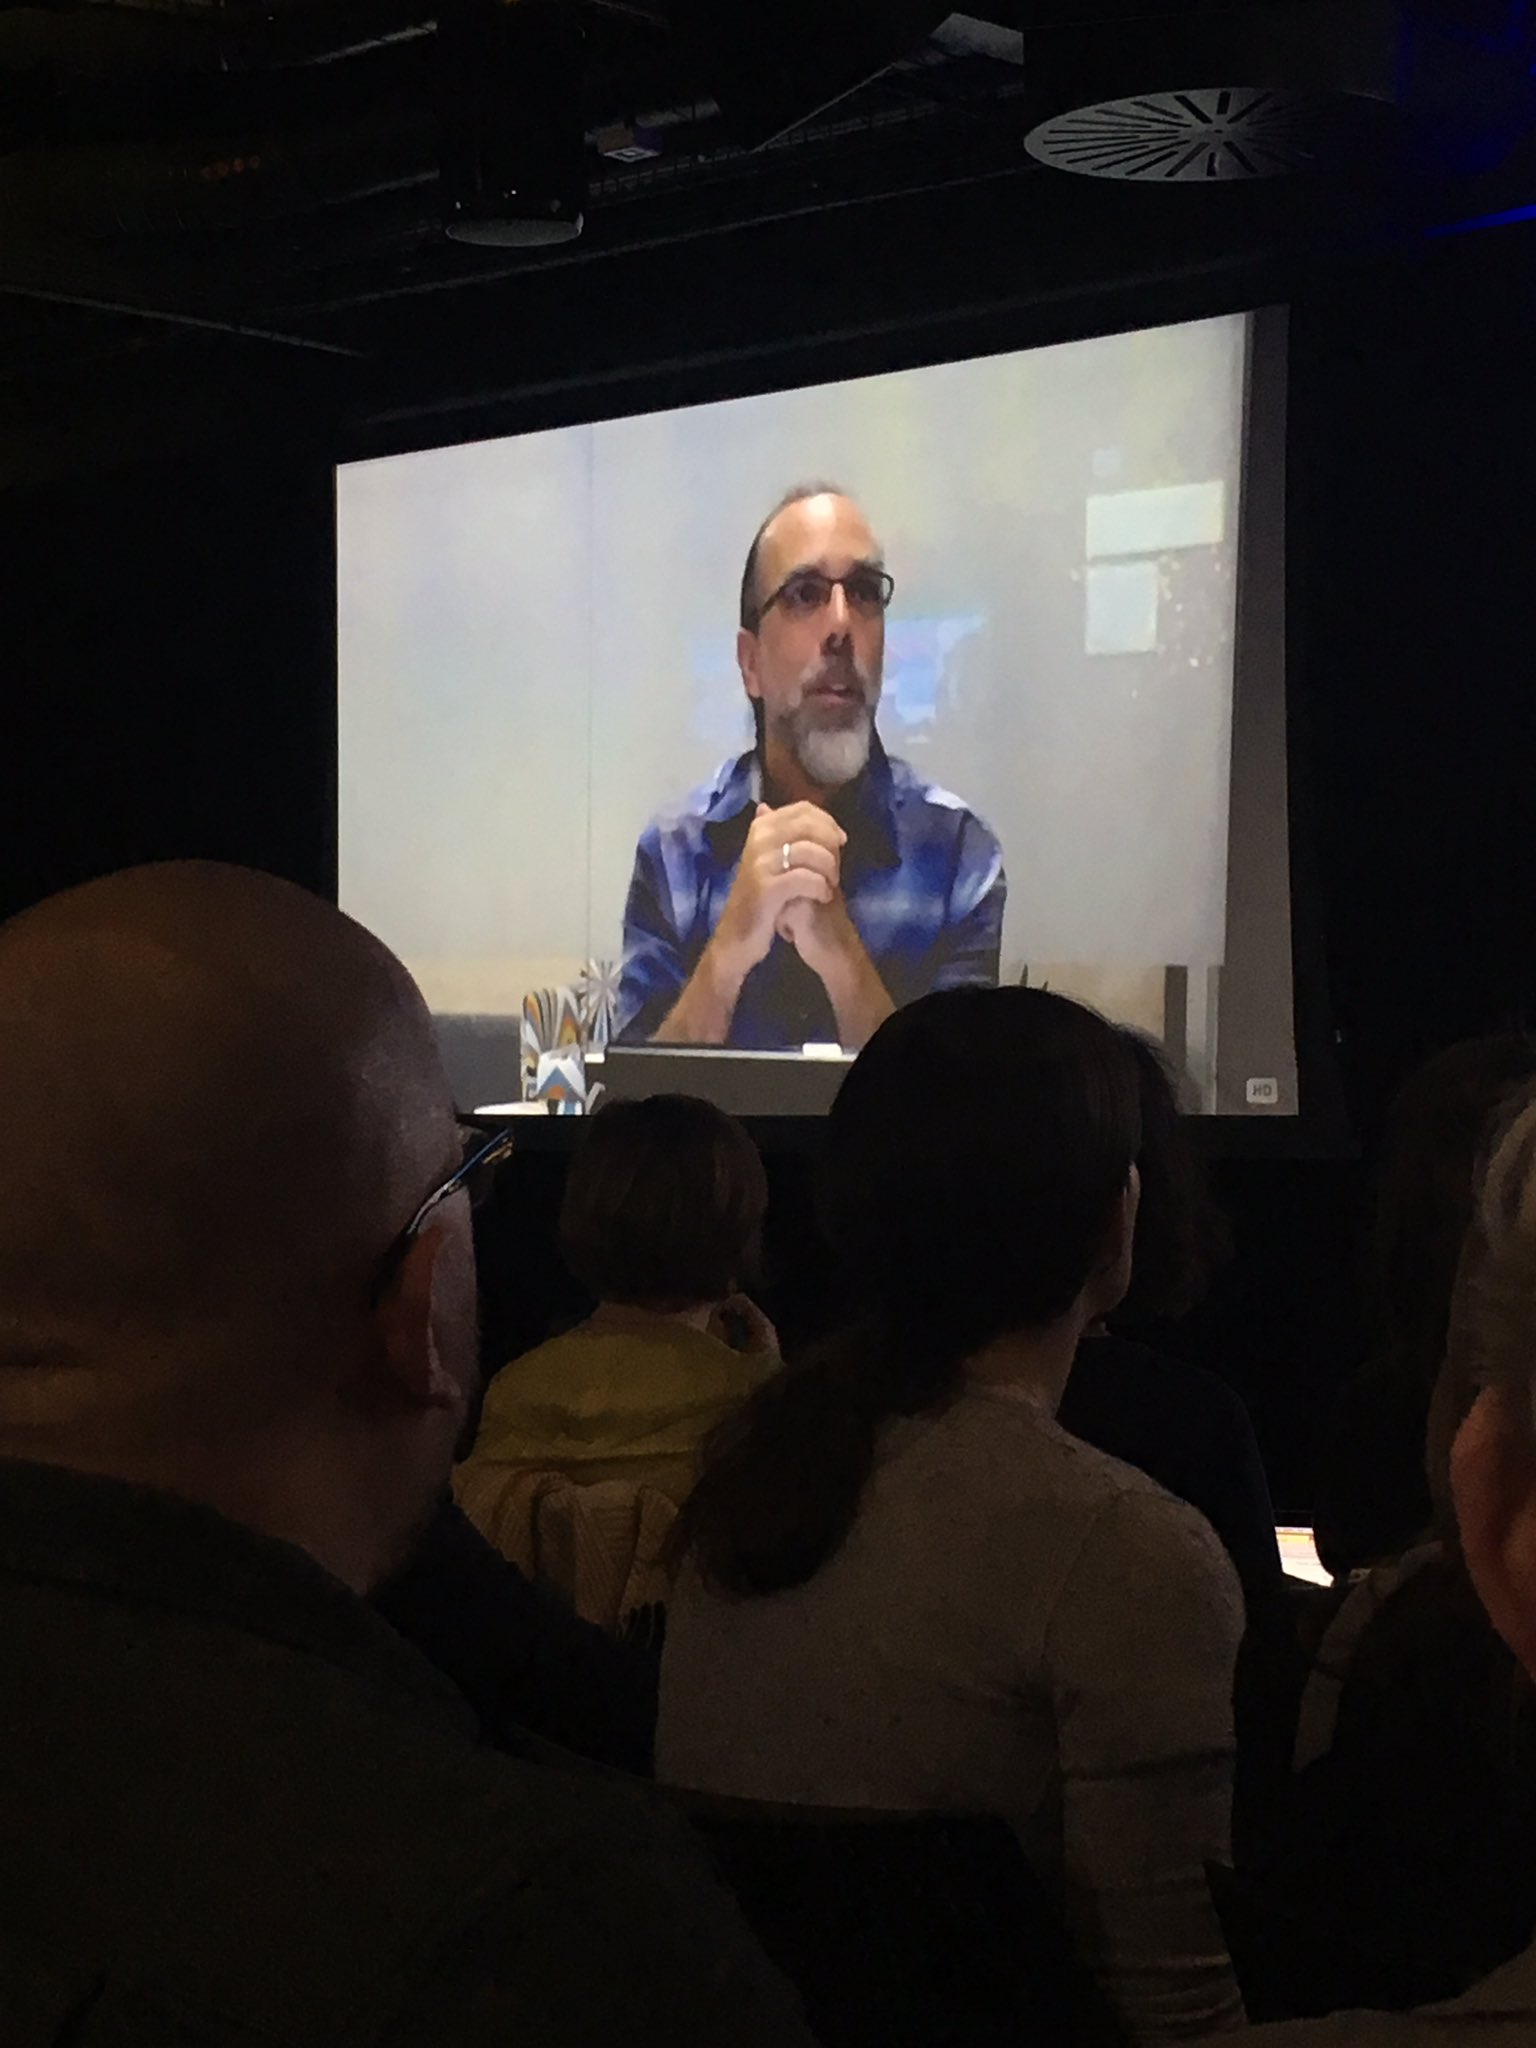 """.@astroteller """"don't let the world tell you you can't be creative & save the world fast"""" eg #ev #haberbosch #ClimateAction #2020dontbelate https://t.co/kyorOrLOMQ"""